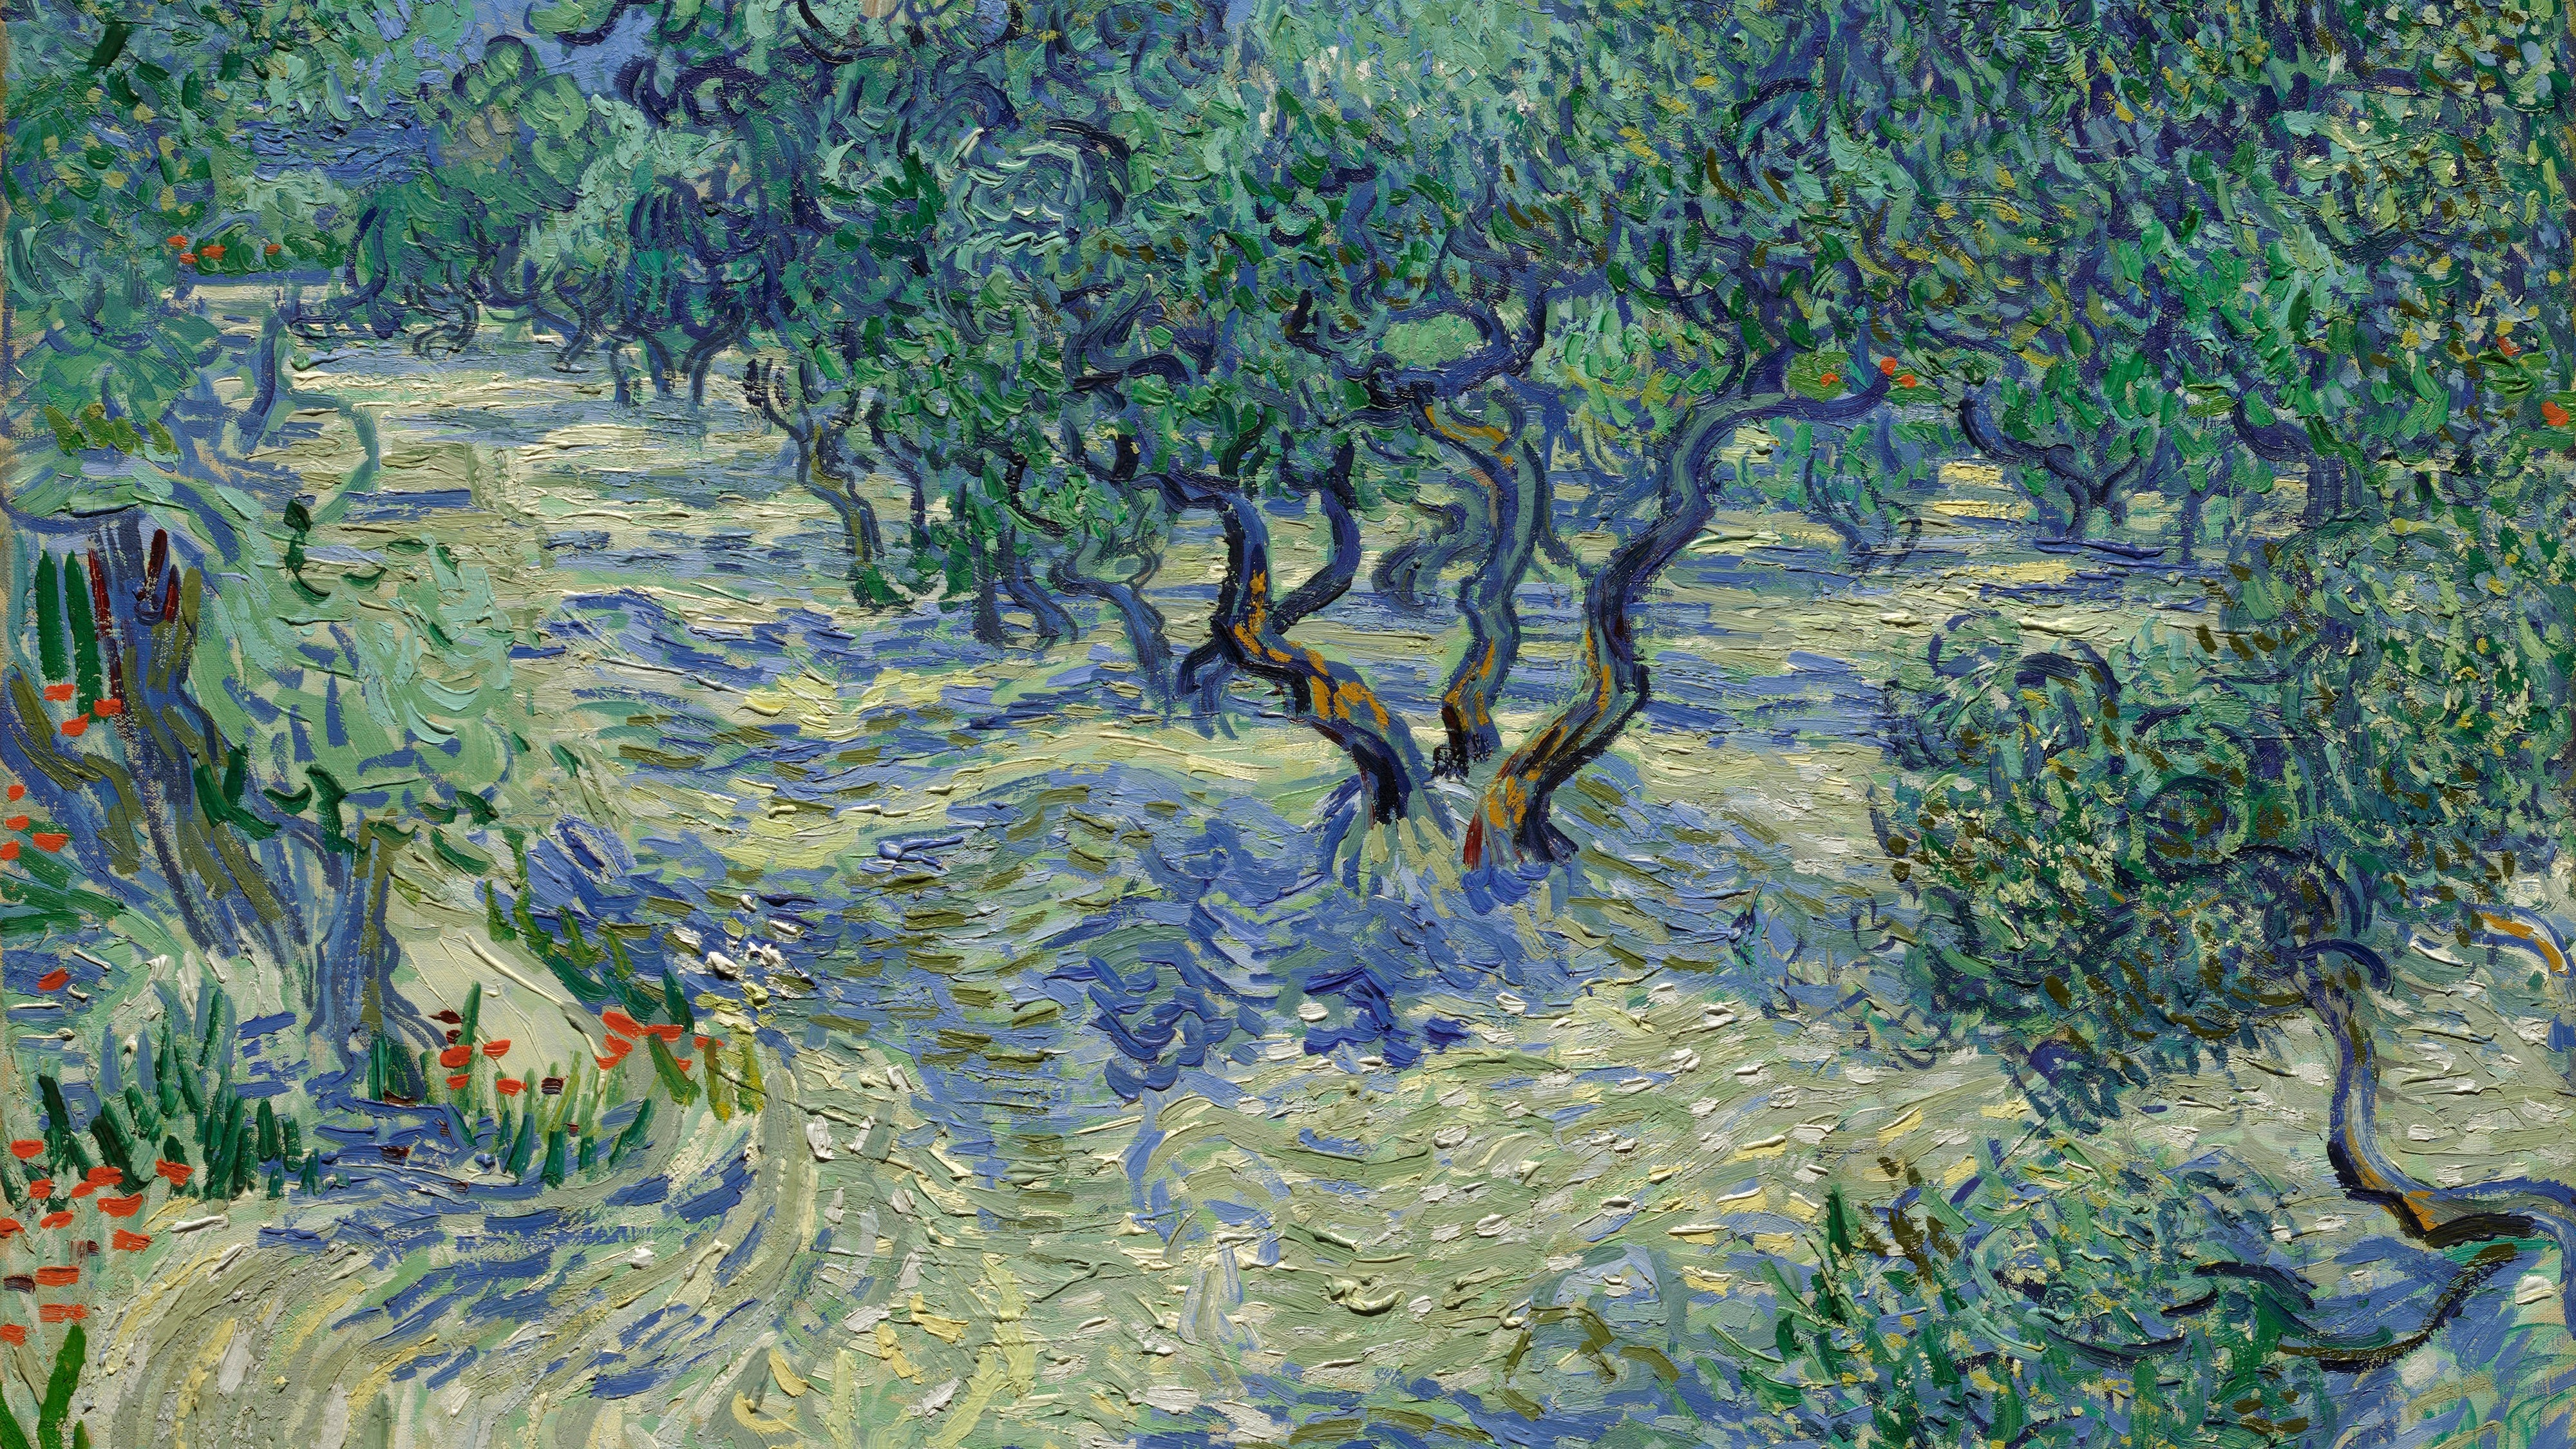 Researchers Find Grasshopper Stuck In Classic Van Gogh Painting